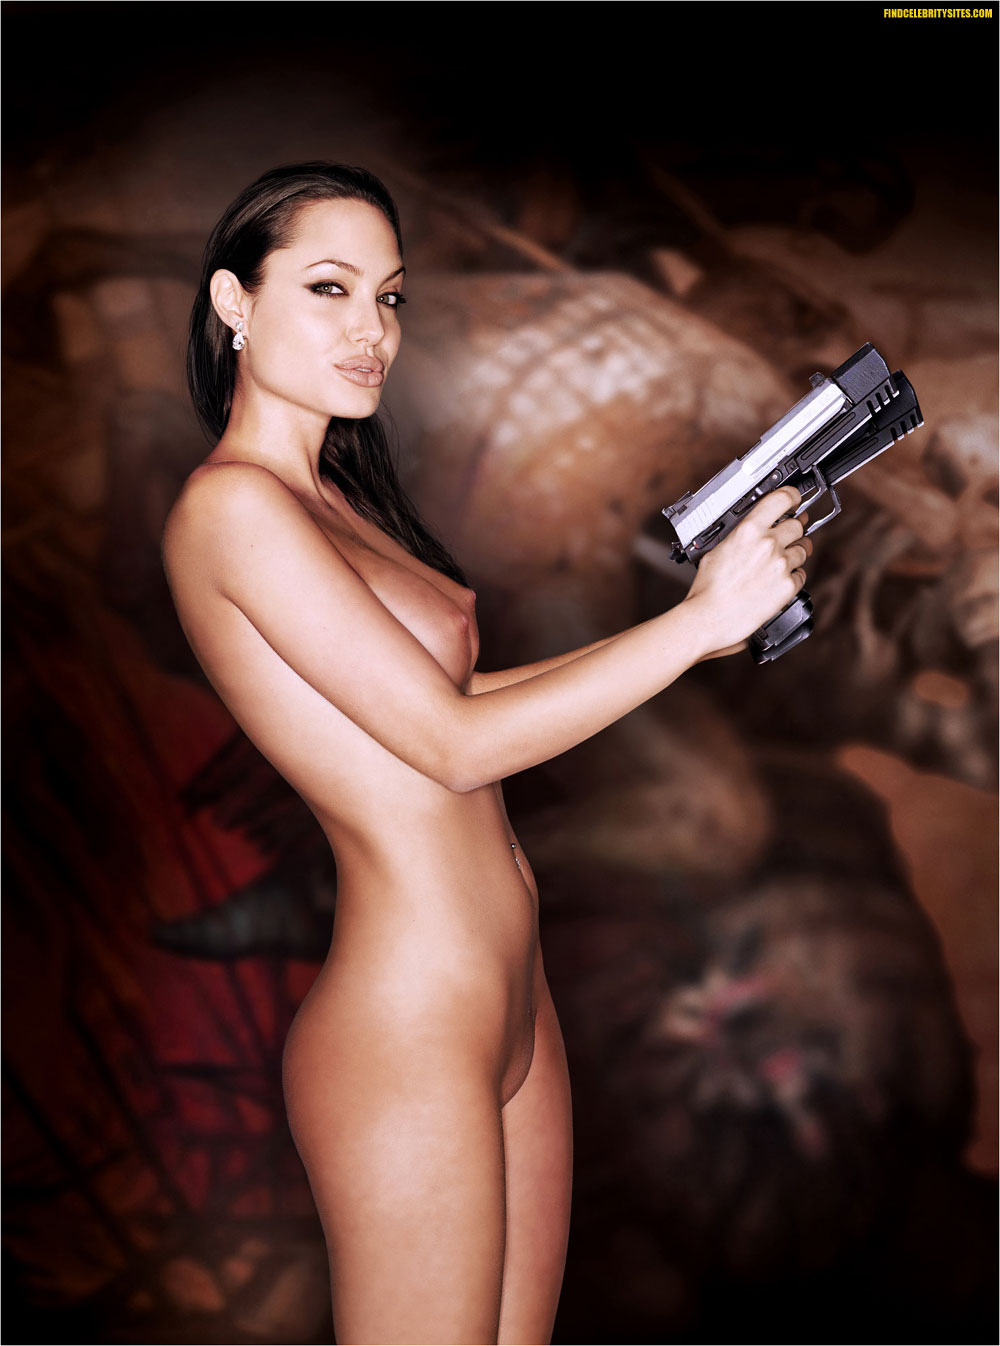 Authoritative message Angelina jolie erotic photo shoot think, that